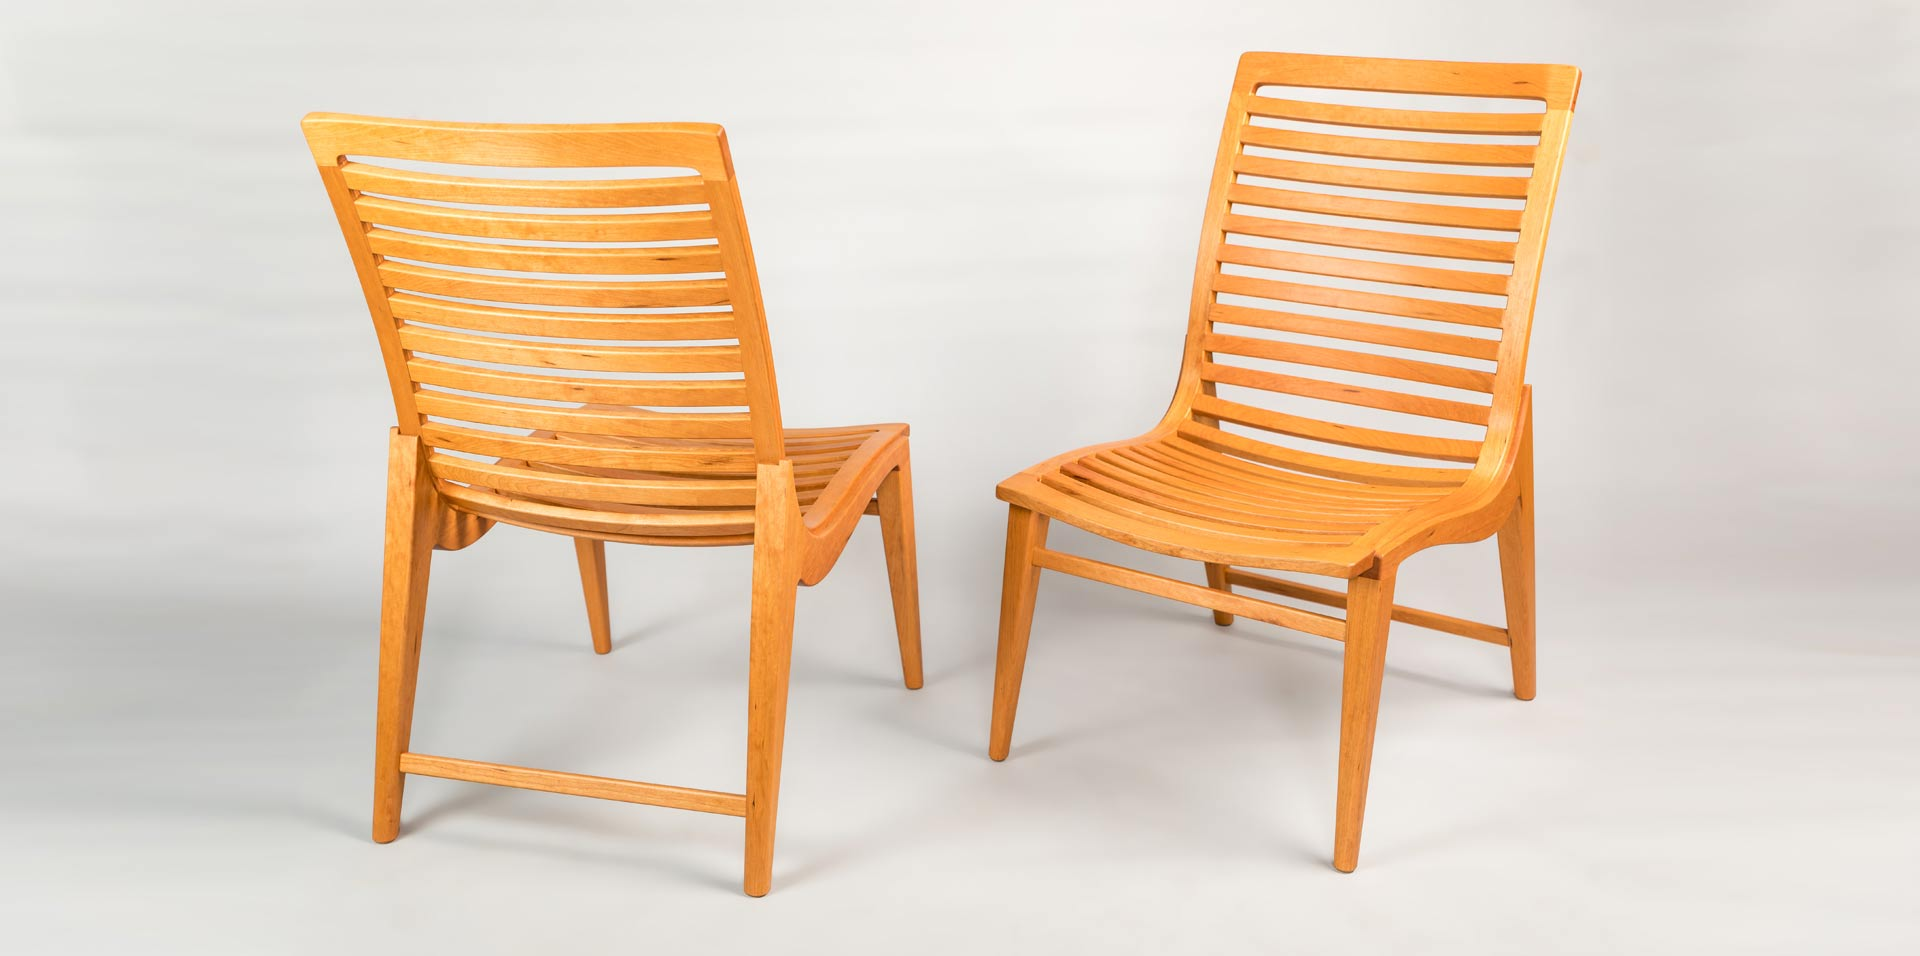 Excelsior Dinning Chairs - Cherry Wood - Doug King Design